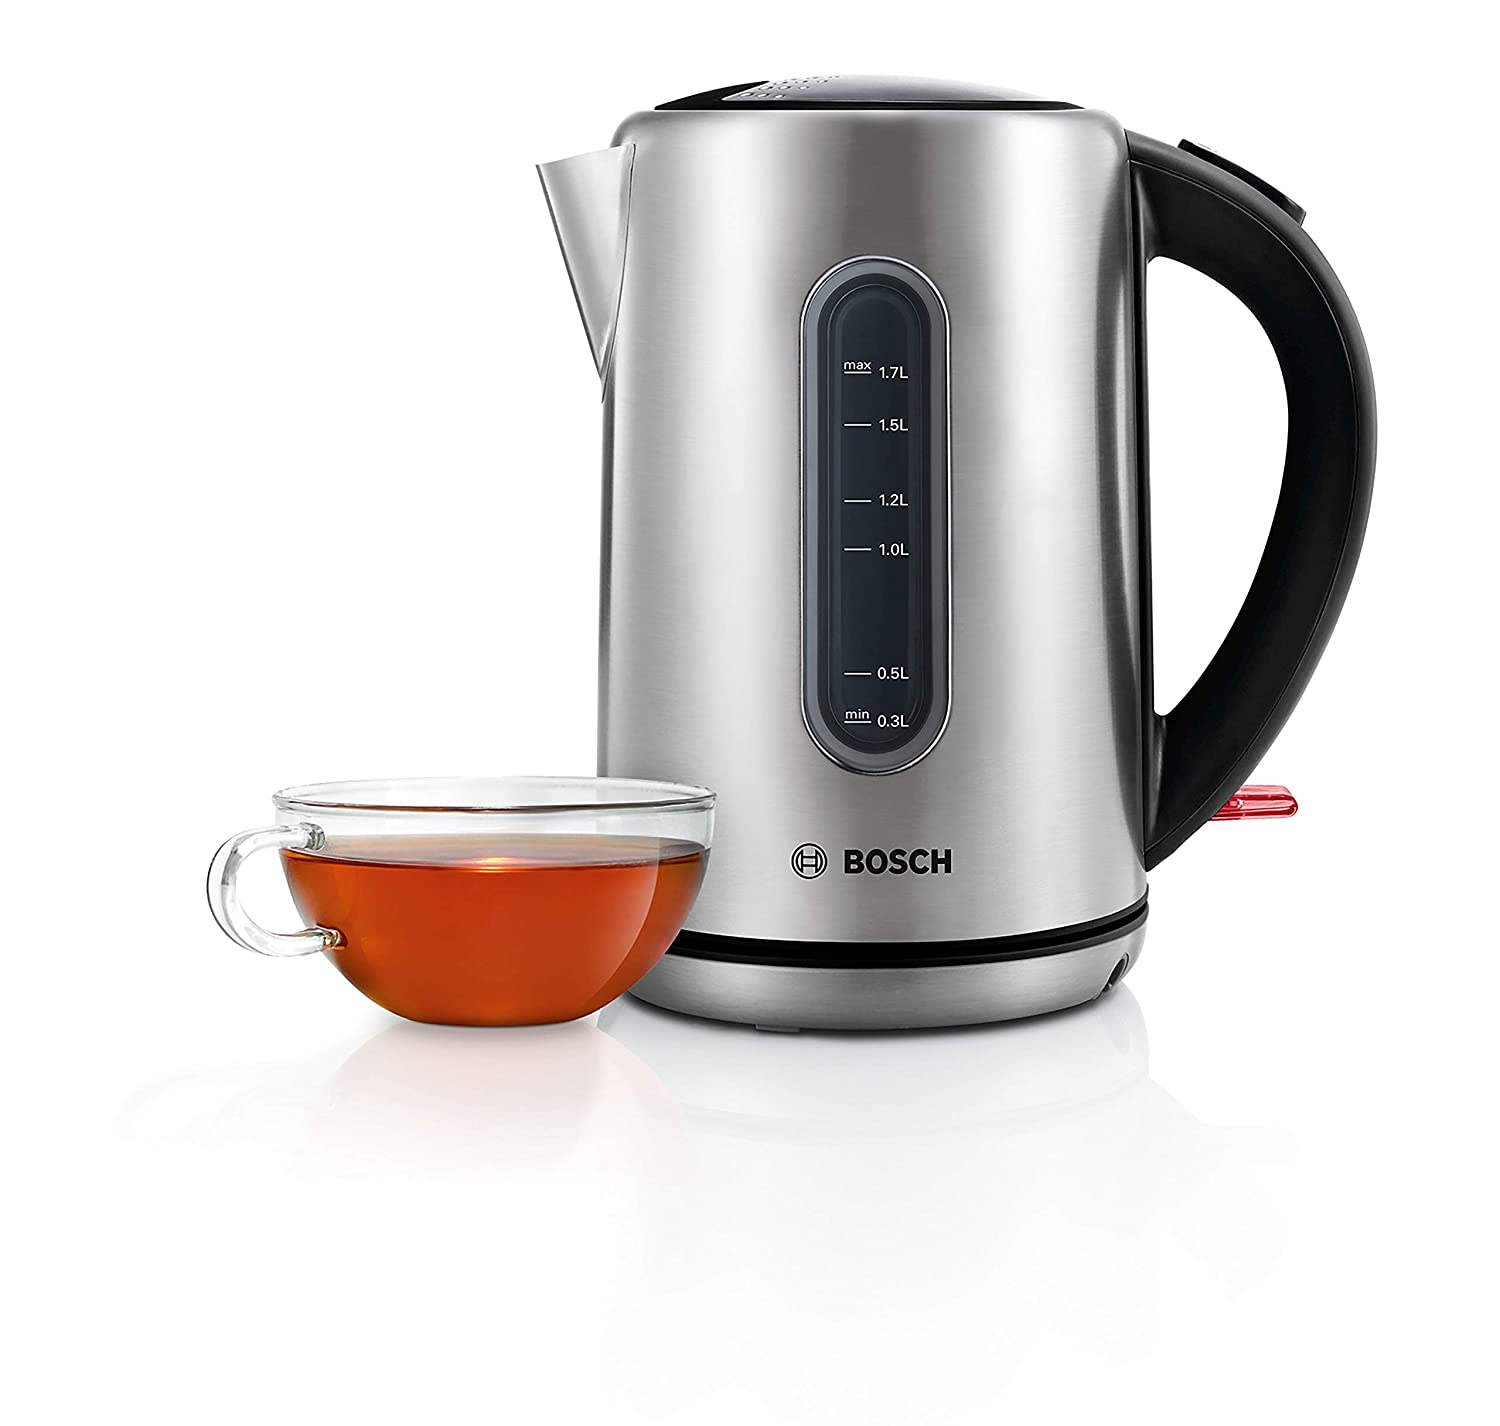 Electric tea kettle. Home requirement. GPD